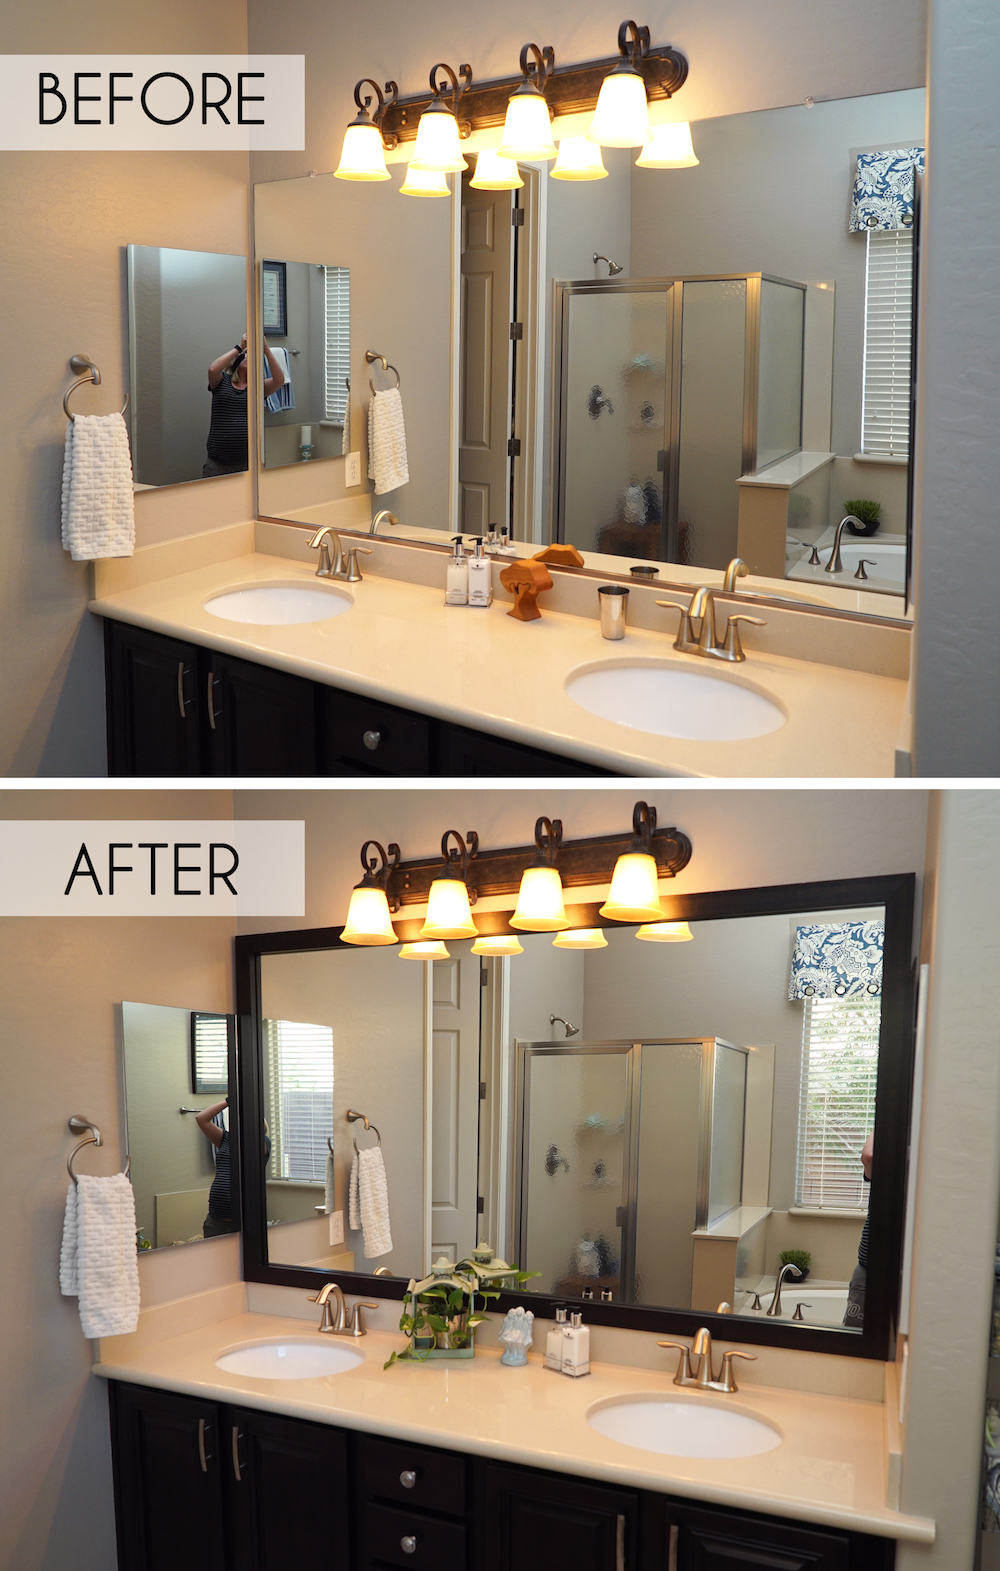 mirrorchic.com before and after